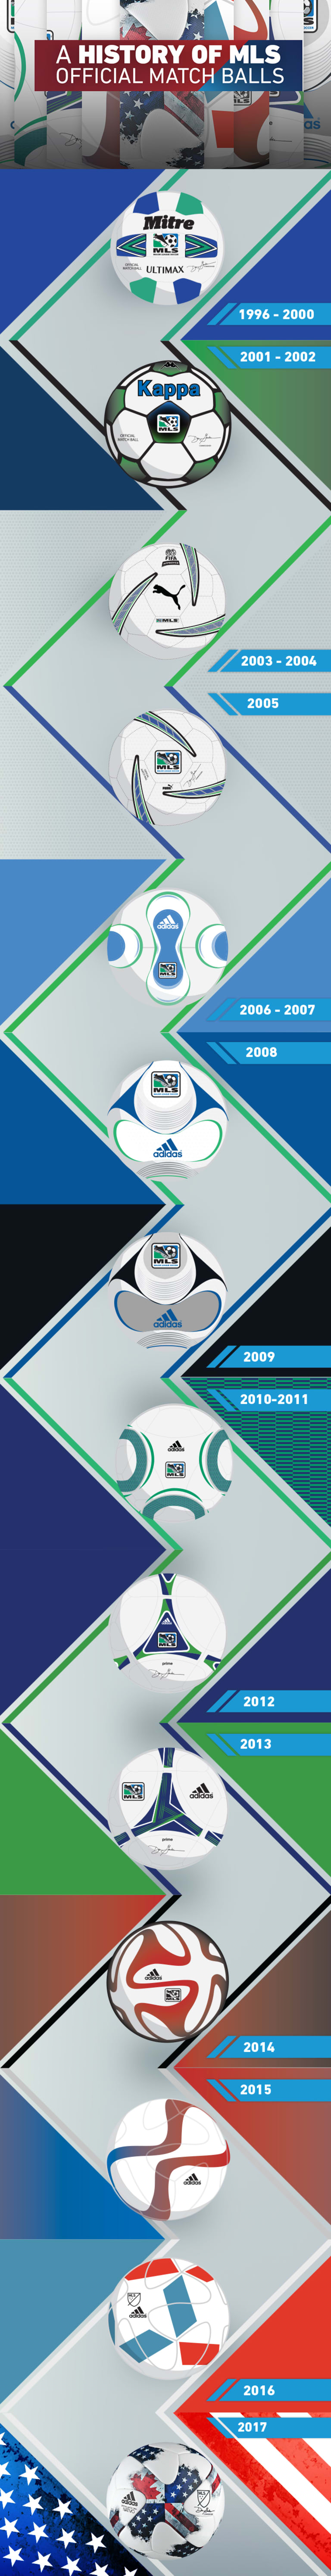 adidas releases official ball of 2018 FIFA World Cup - https://league-mp7static.mlsdigital.net/images/History-of-Ball-infographic-4.jpeg?null